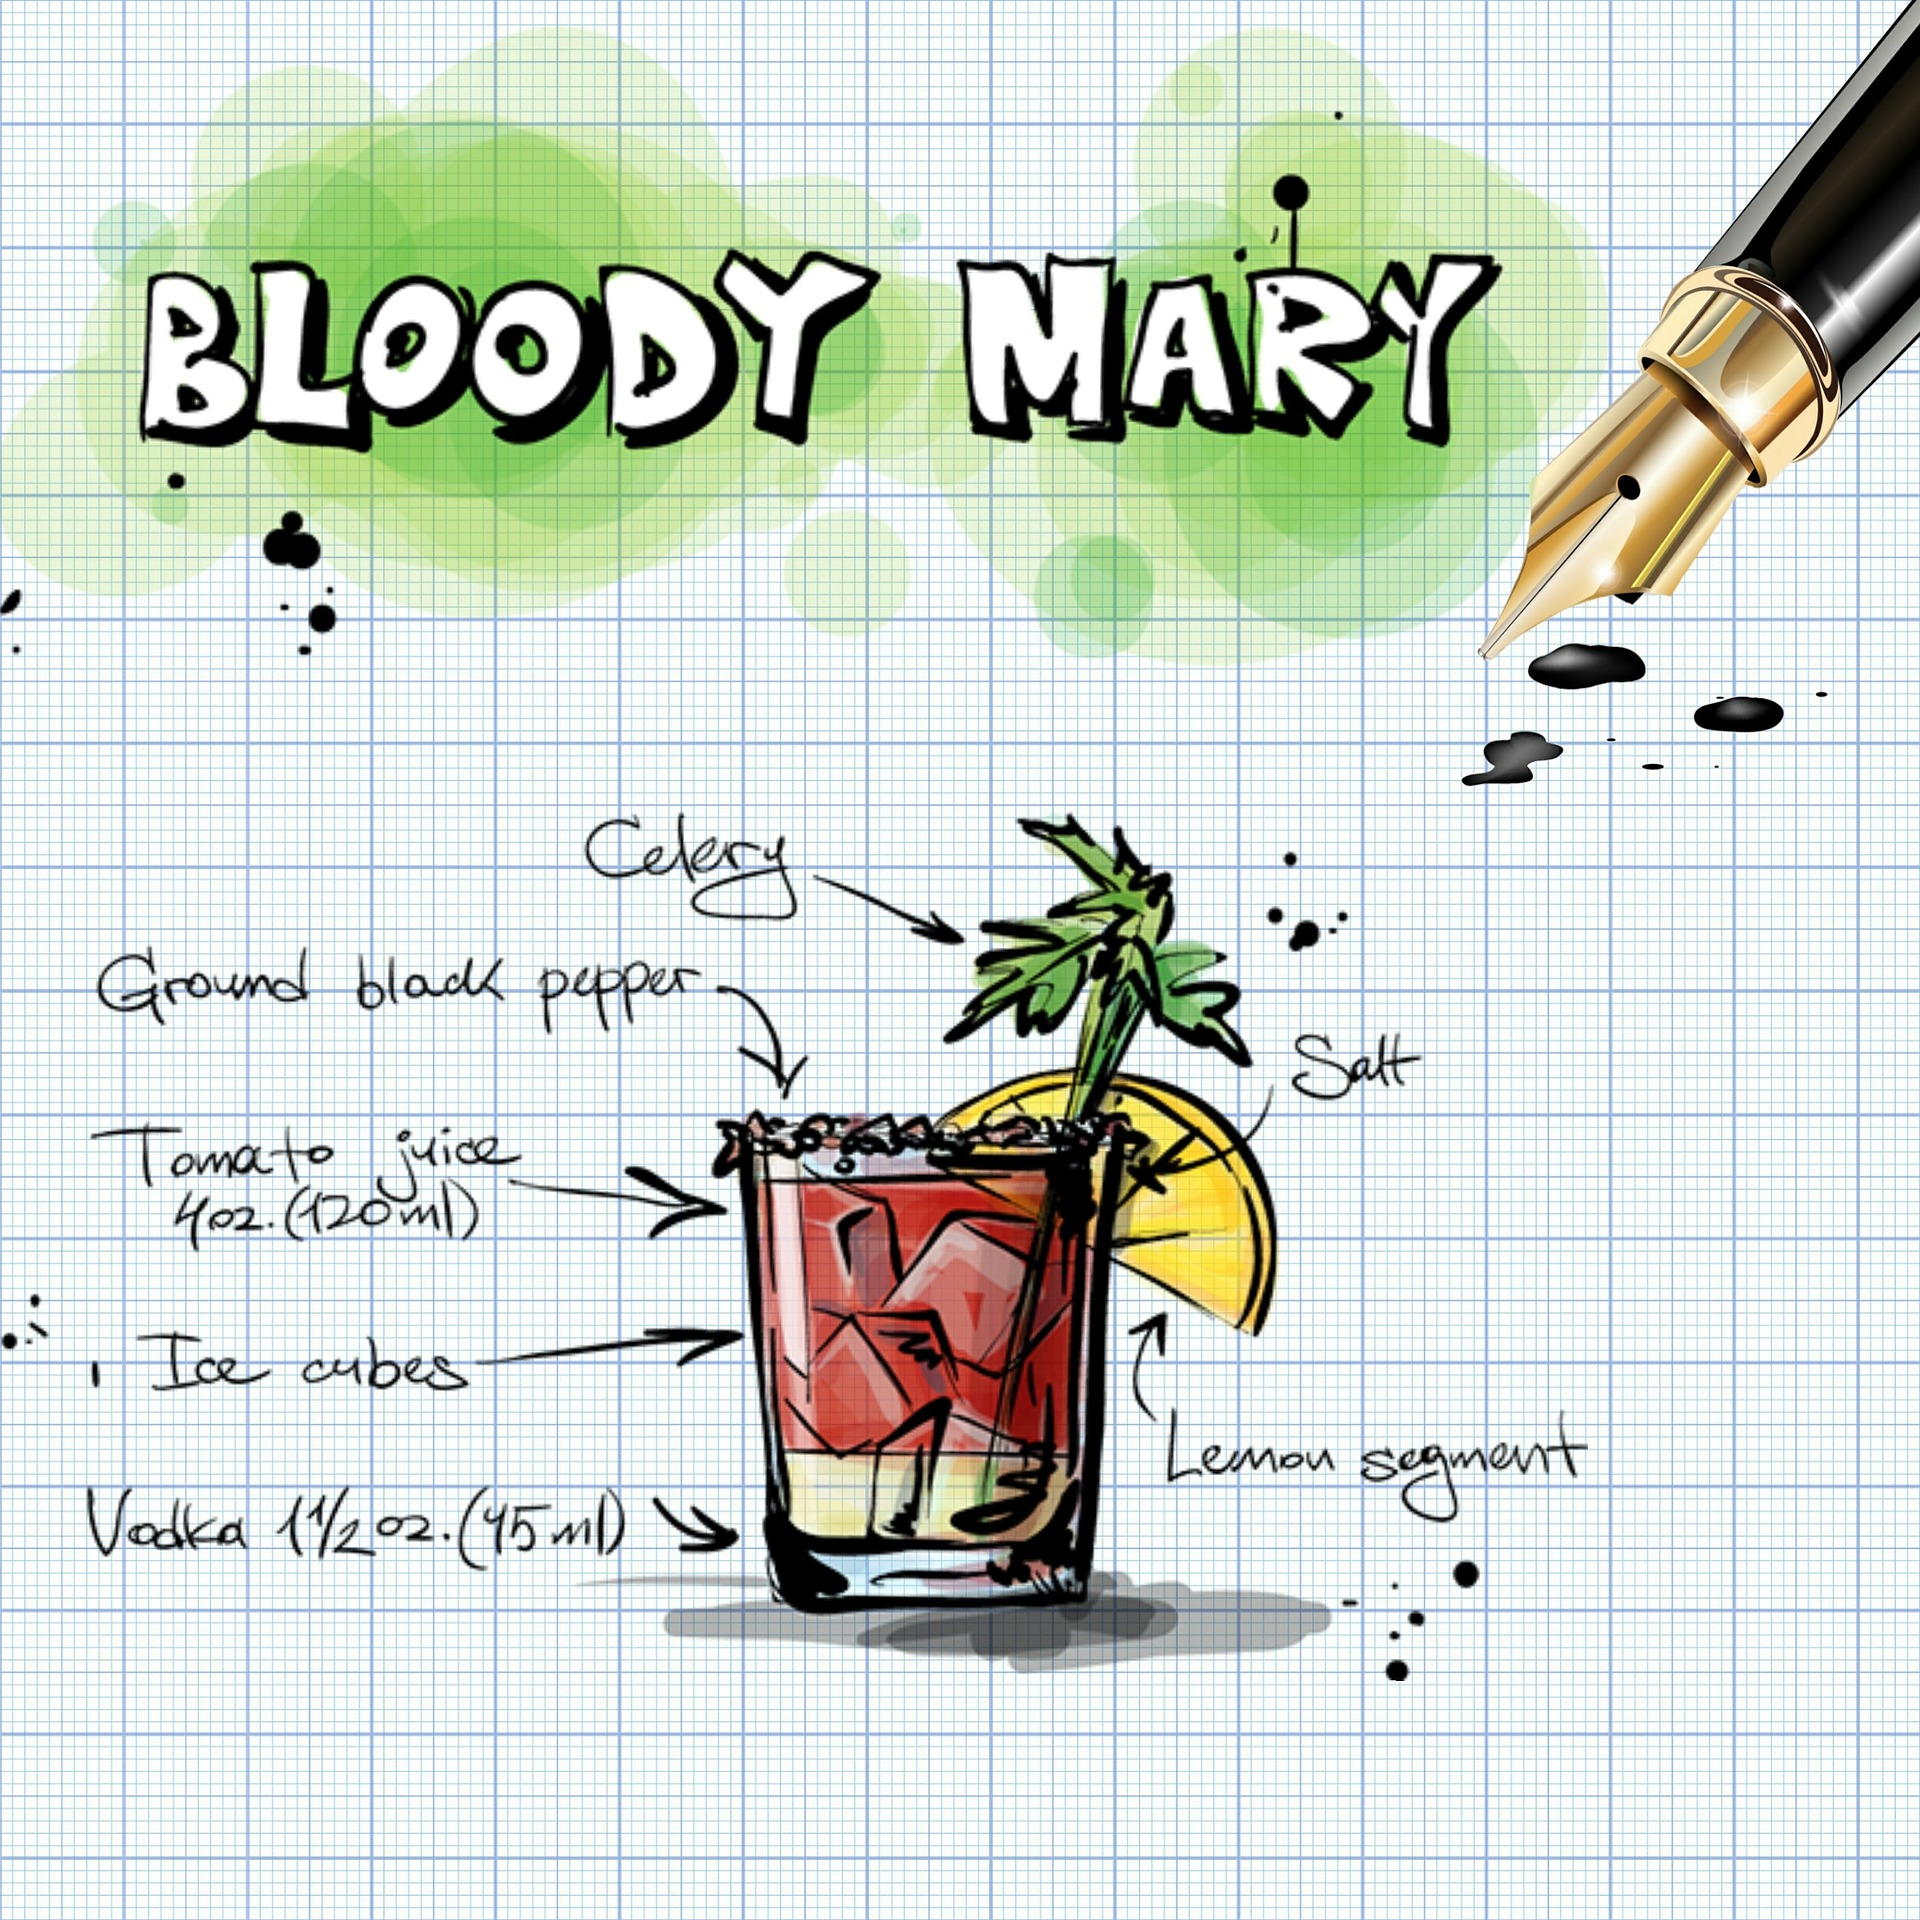 bloody-mary-847233_1920